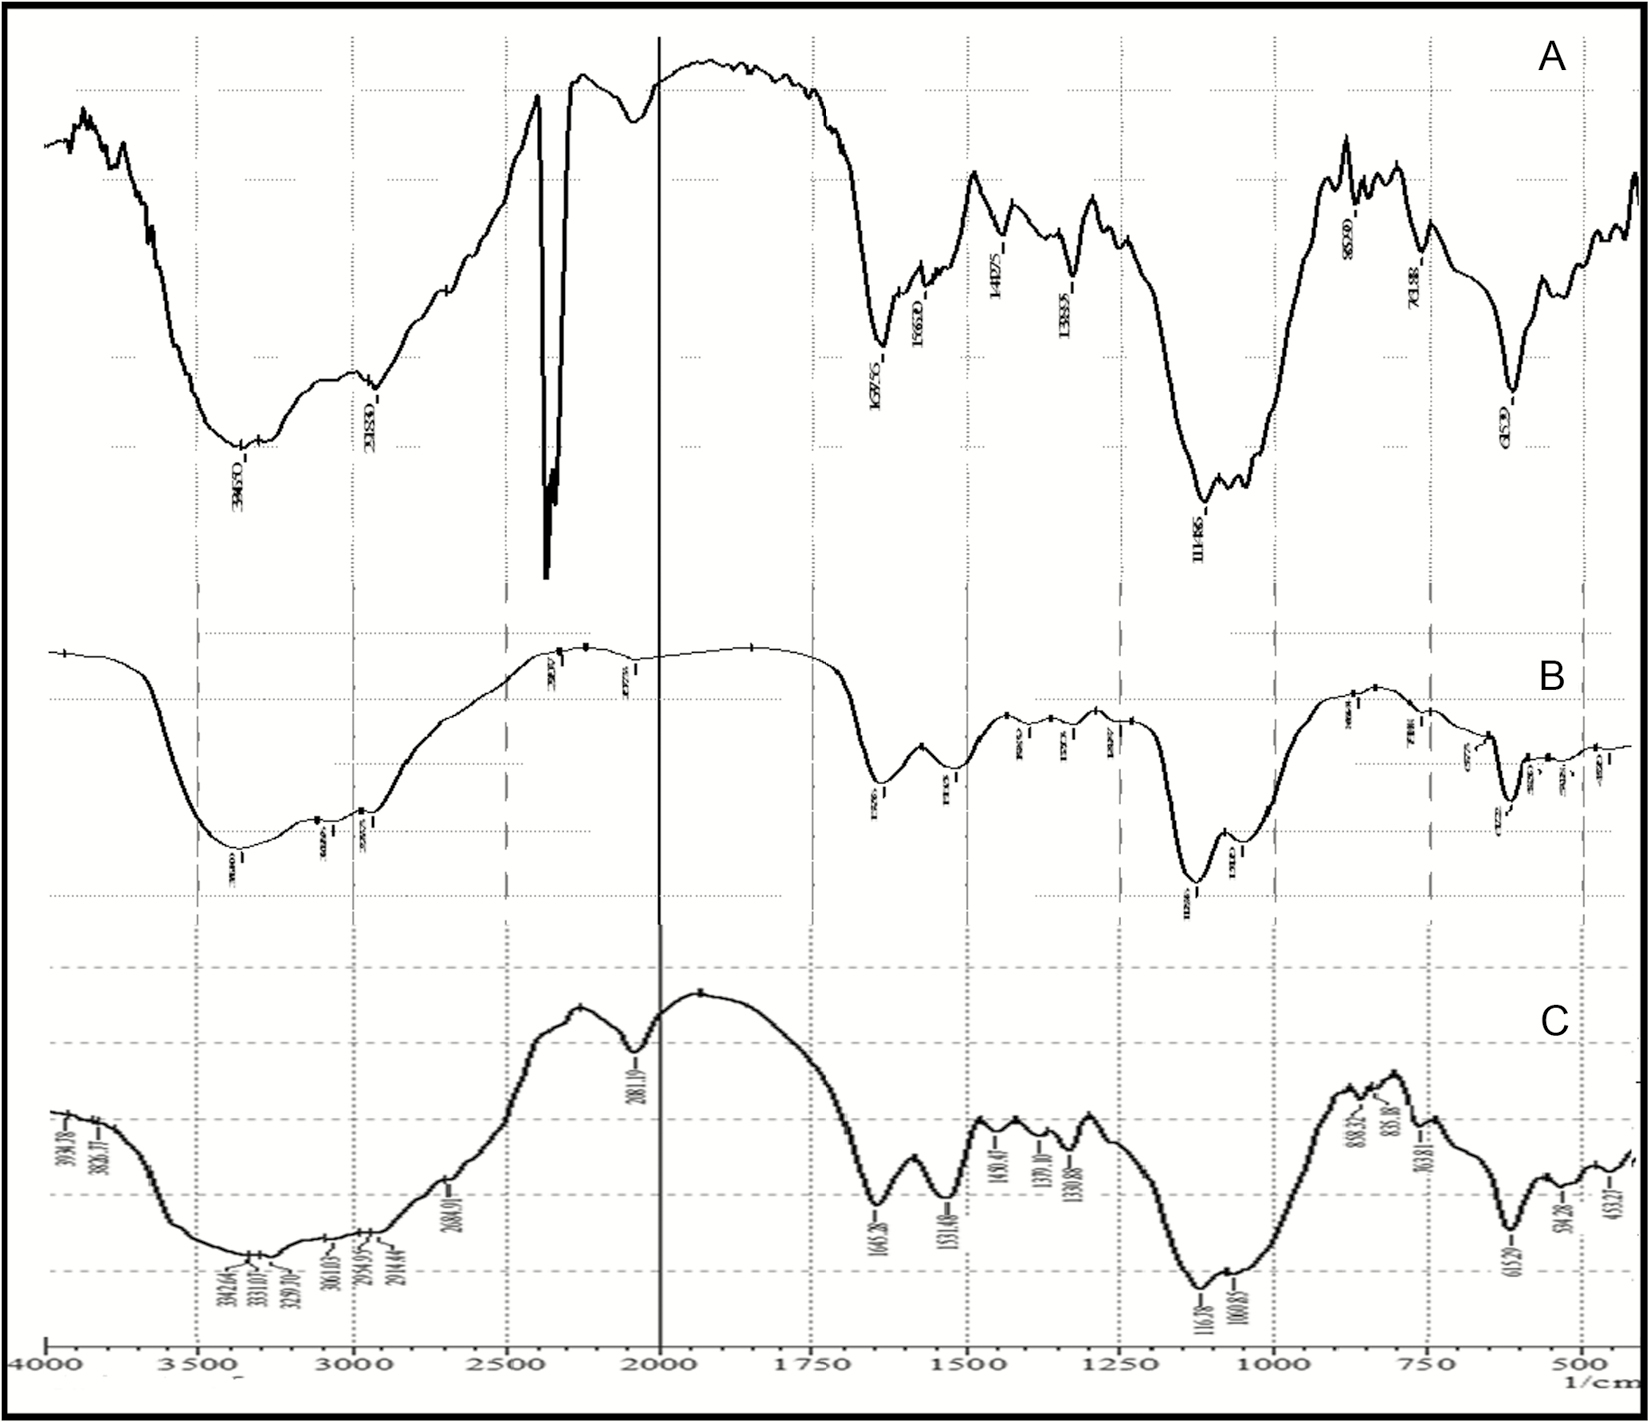 Figure 3: Fourier transform infrared spectroscopy spectra of drug incubated and examined (A) at time 0, (B) at 37°C after 14 days, and (C) with 5% moisture at 37°C after 14 days<sup>[19]</sup>